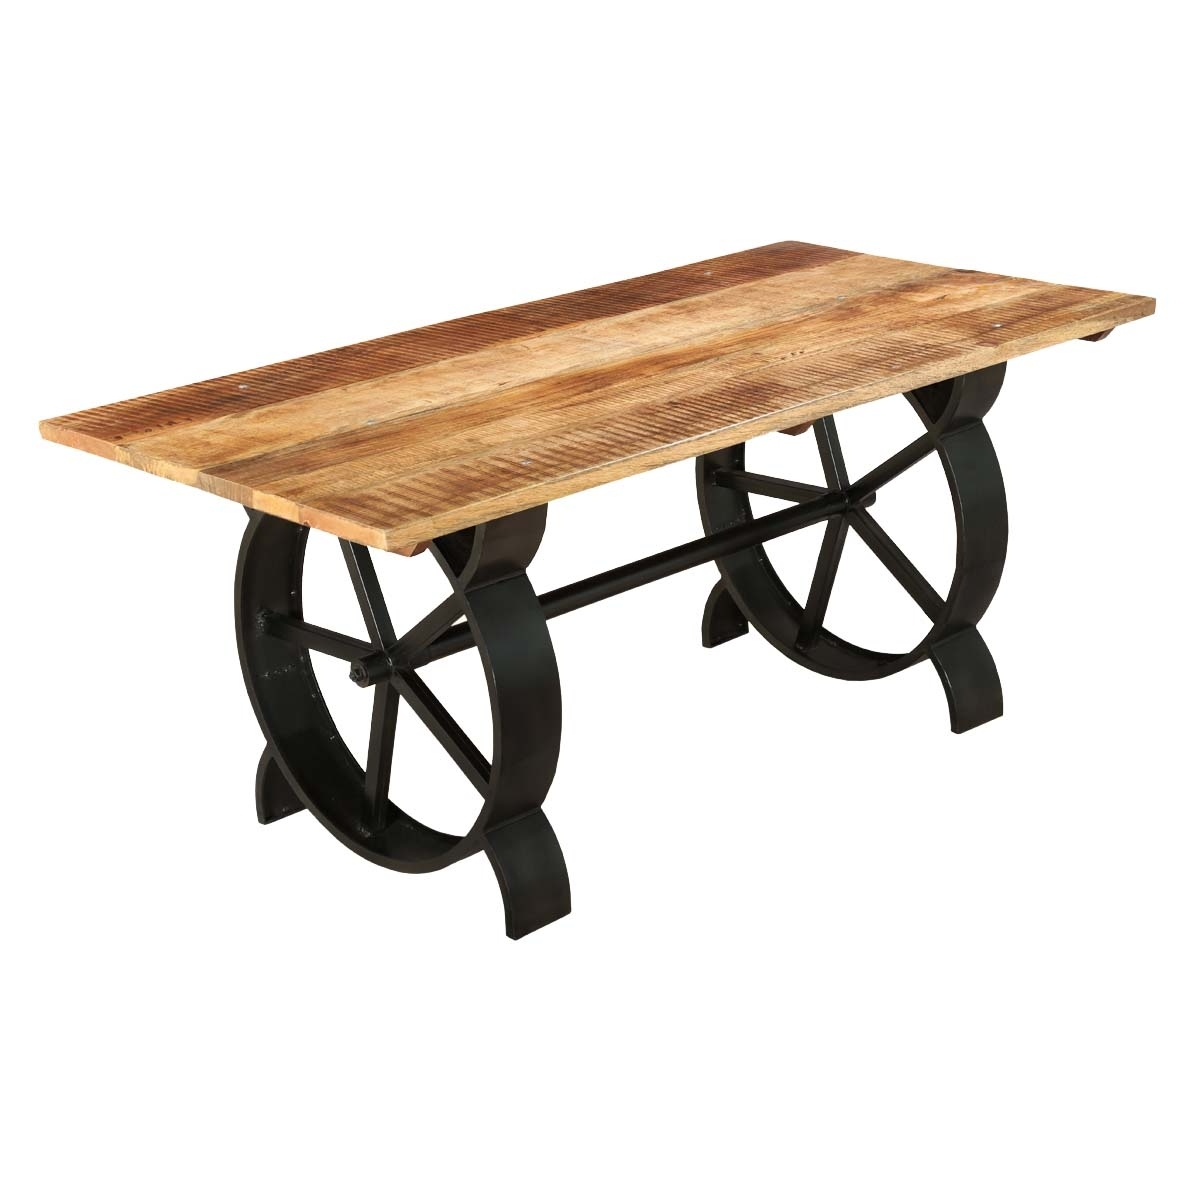 Popular Mango Wood/iron Dining Tables For Virginia Contemporary Handcrafted Iron And Mango Wood Dining Table (View 21 of 25)